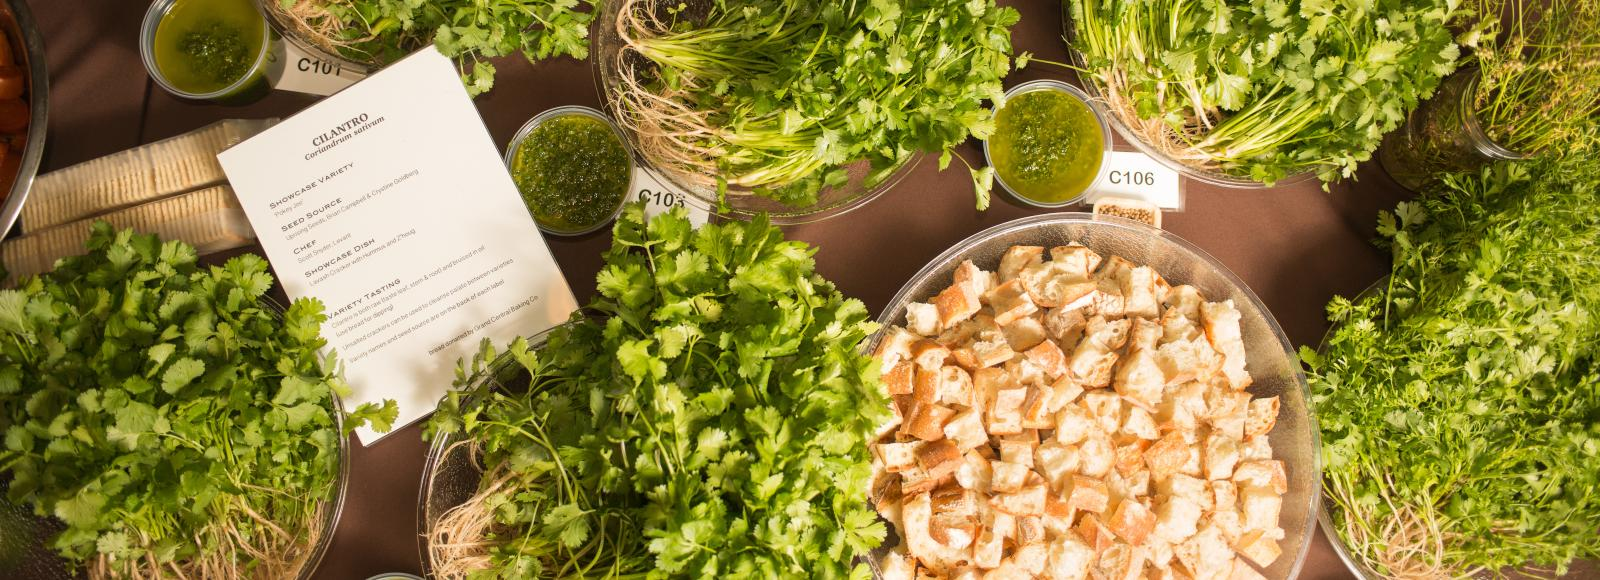 cilantro varieties and a bowl of bread cubes